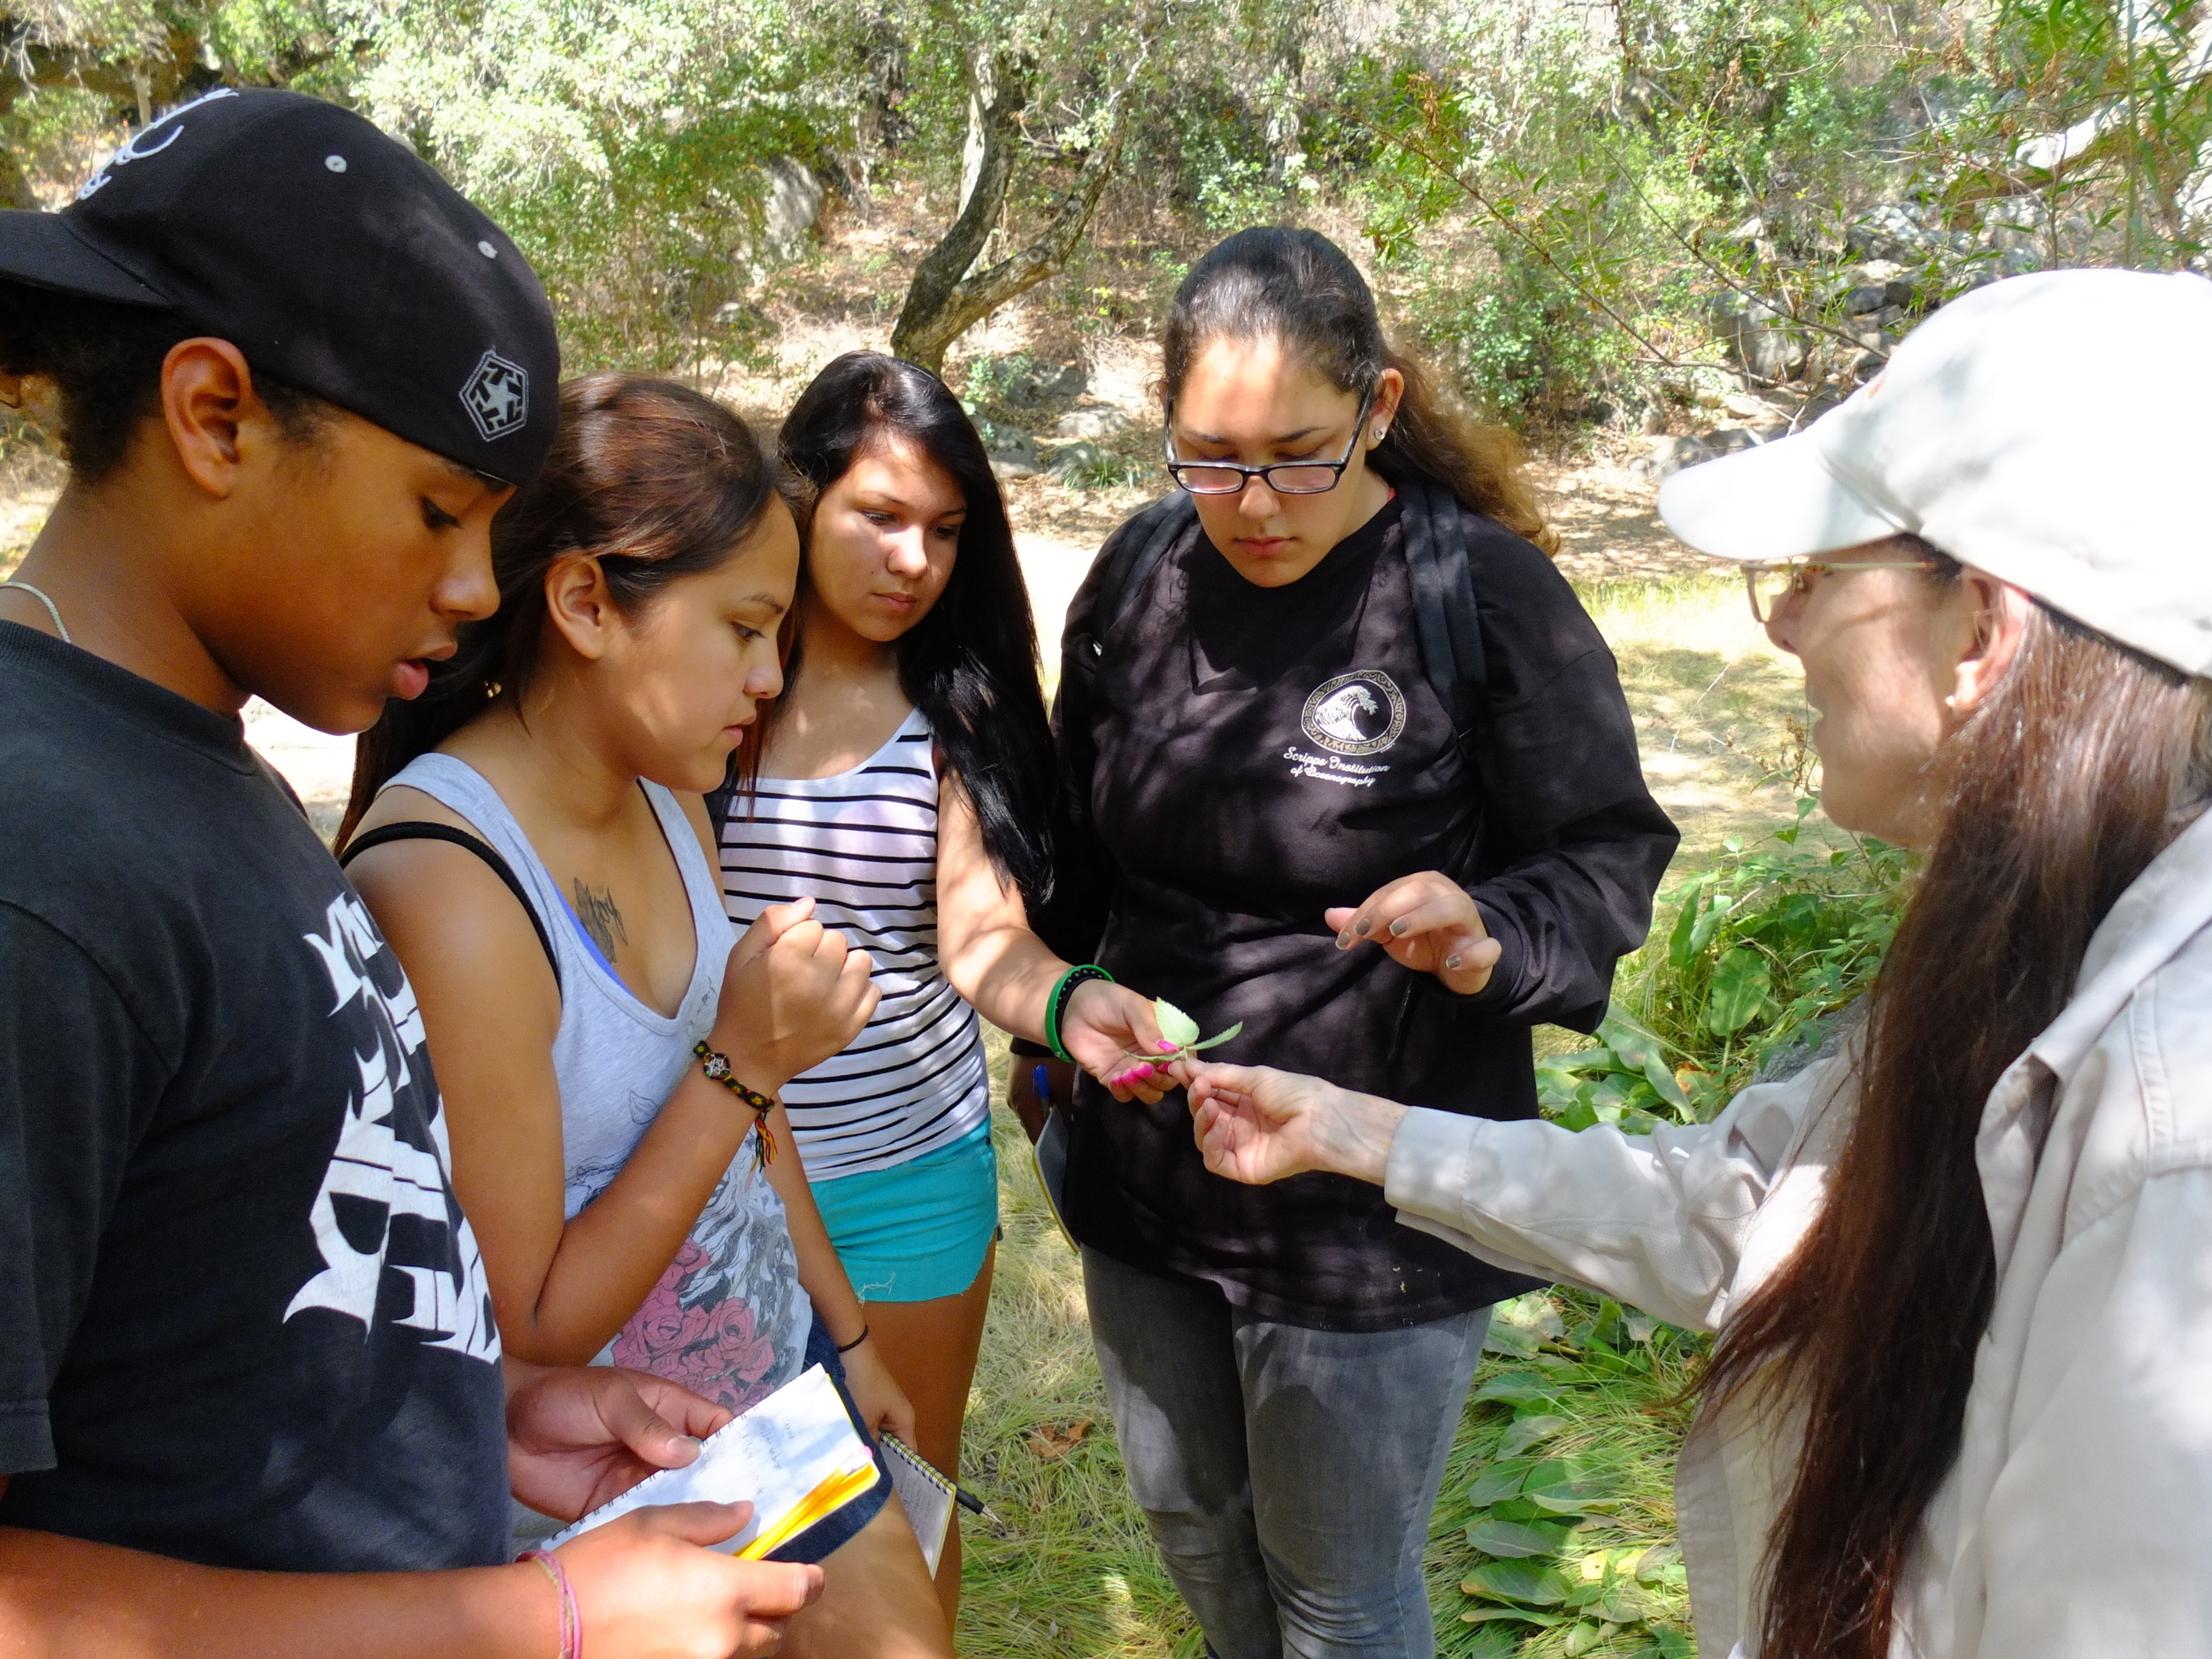 San Diego State Professor, Dr. norrie Robbins is a geologists and ethno-botonists, specializing in the plants of Southern California Coast. She has also studied with kumeyaay Elders Jane dumas, and often joins  ITY Guest presenter Richard Bugbee during our ethno-botony walks..